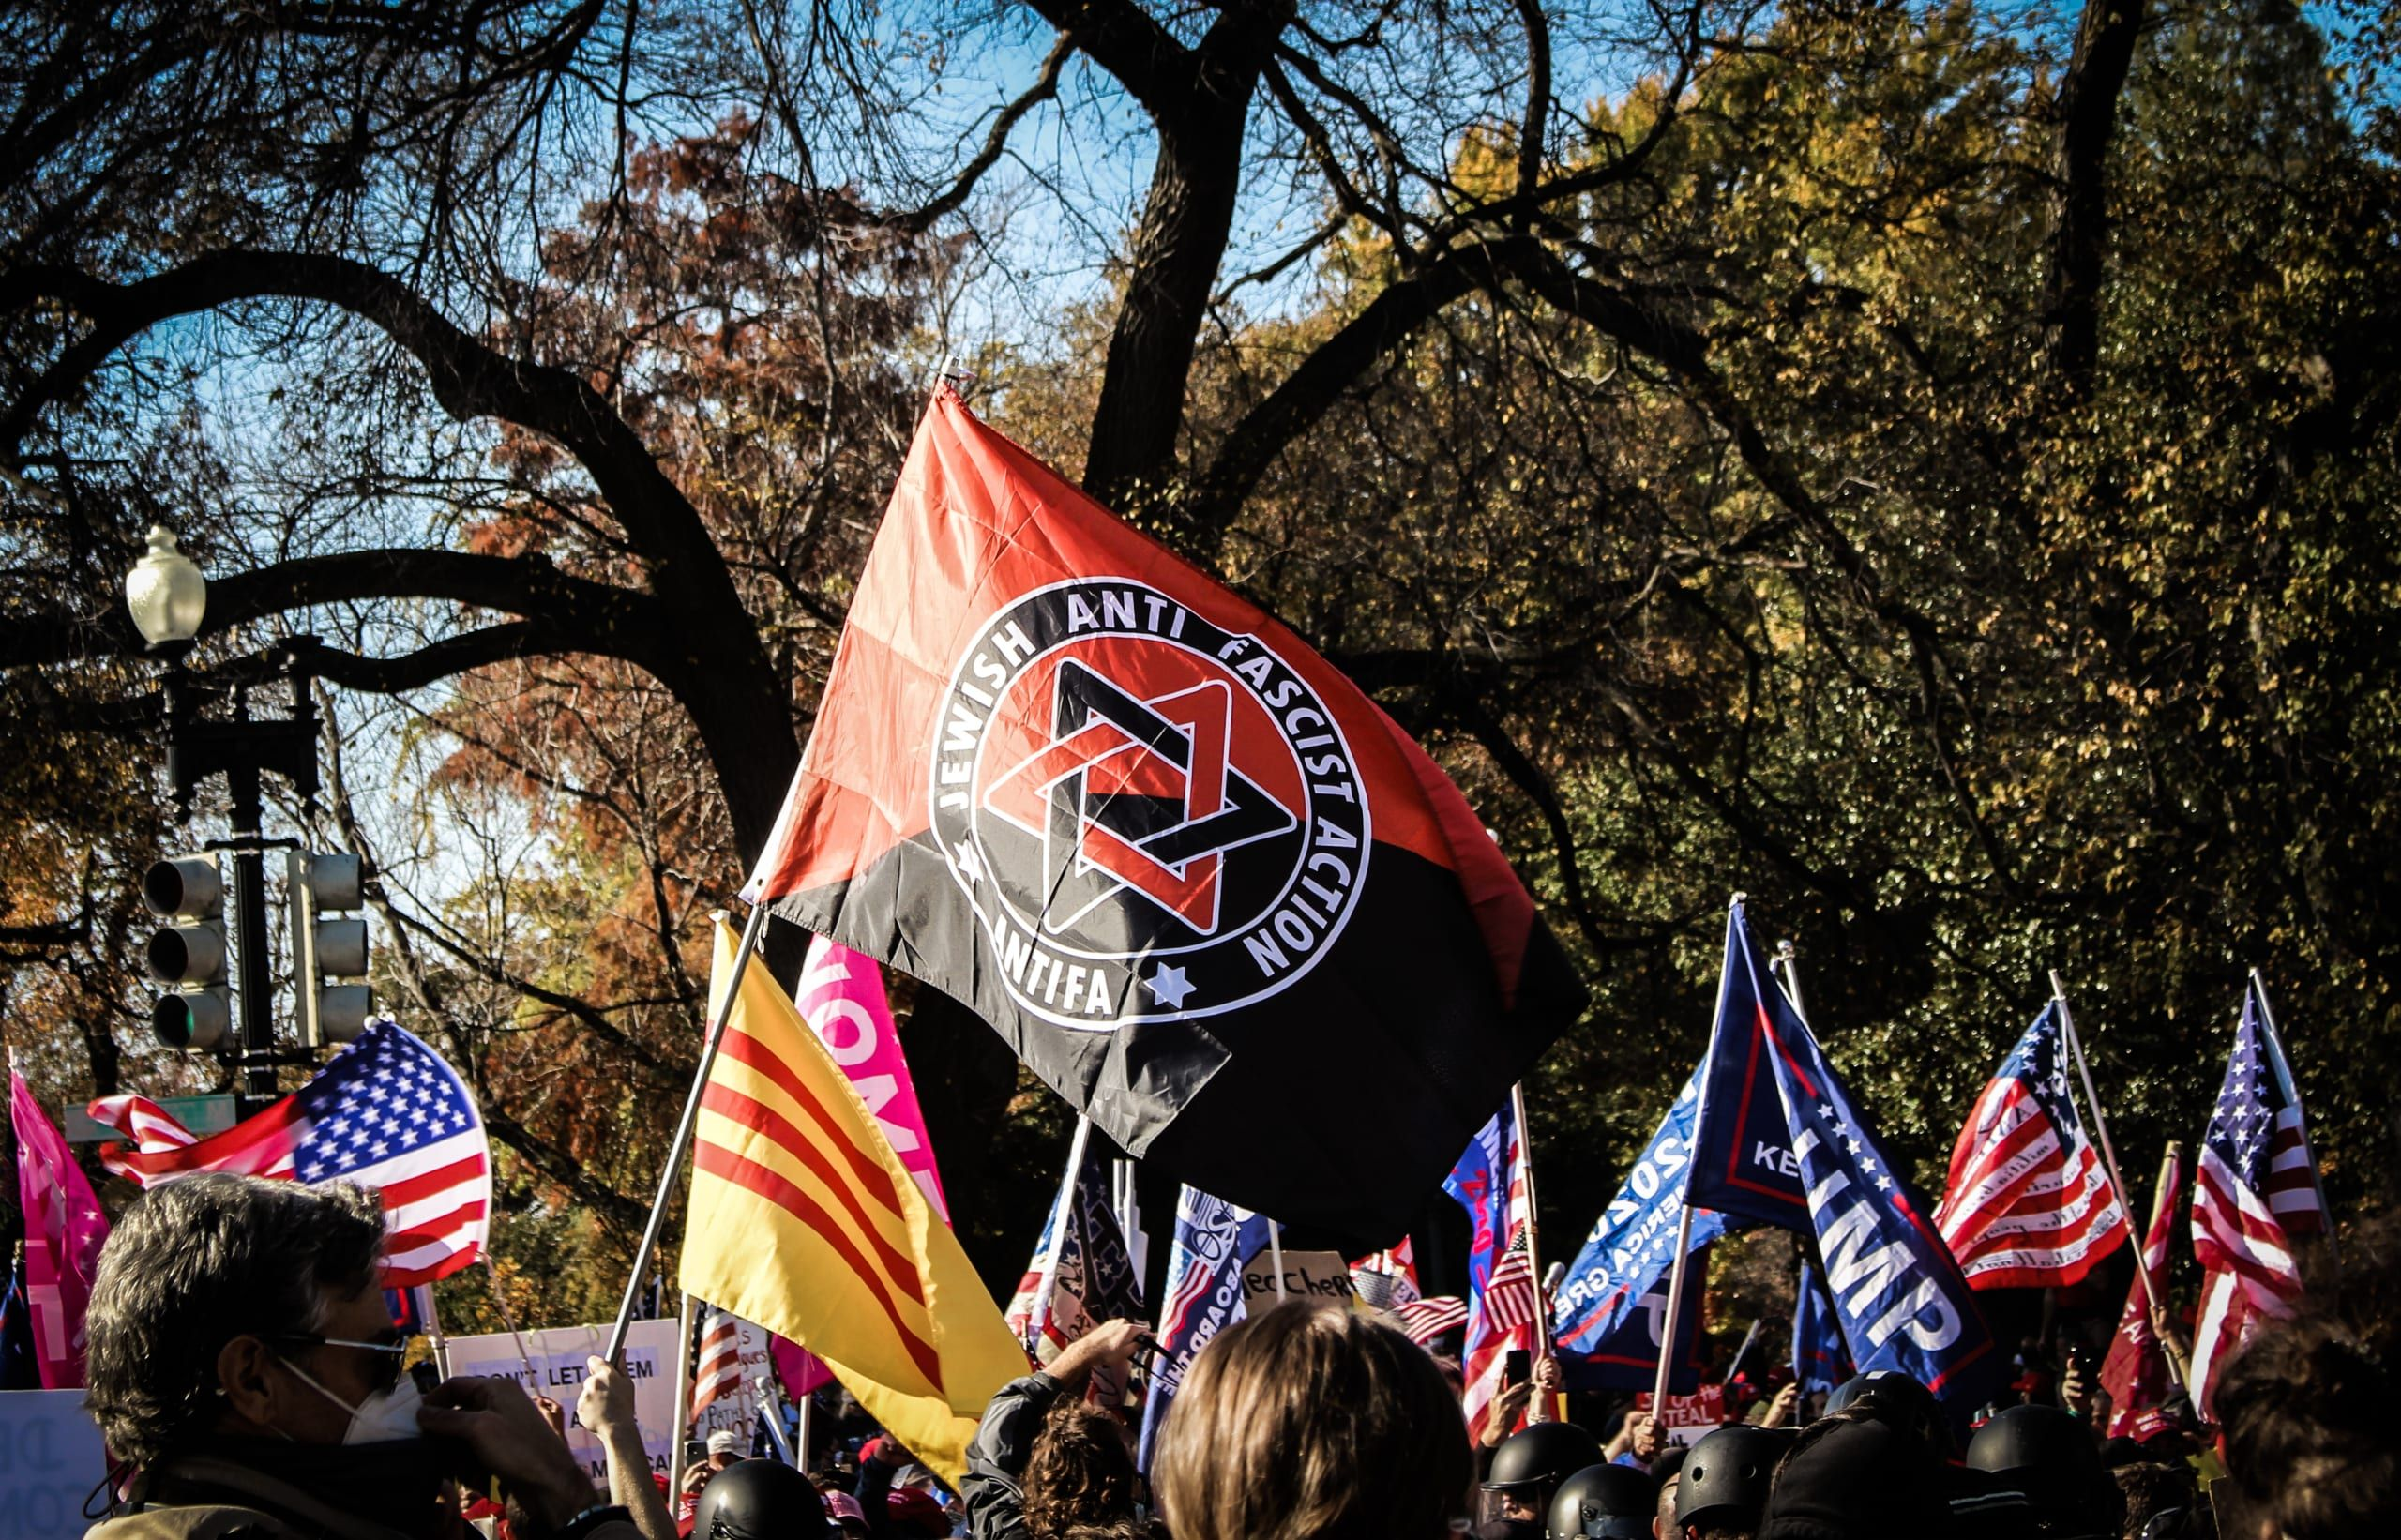 a rally against fascists